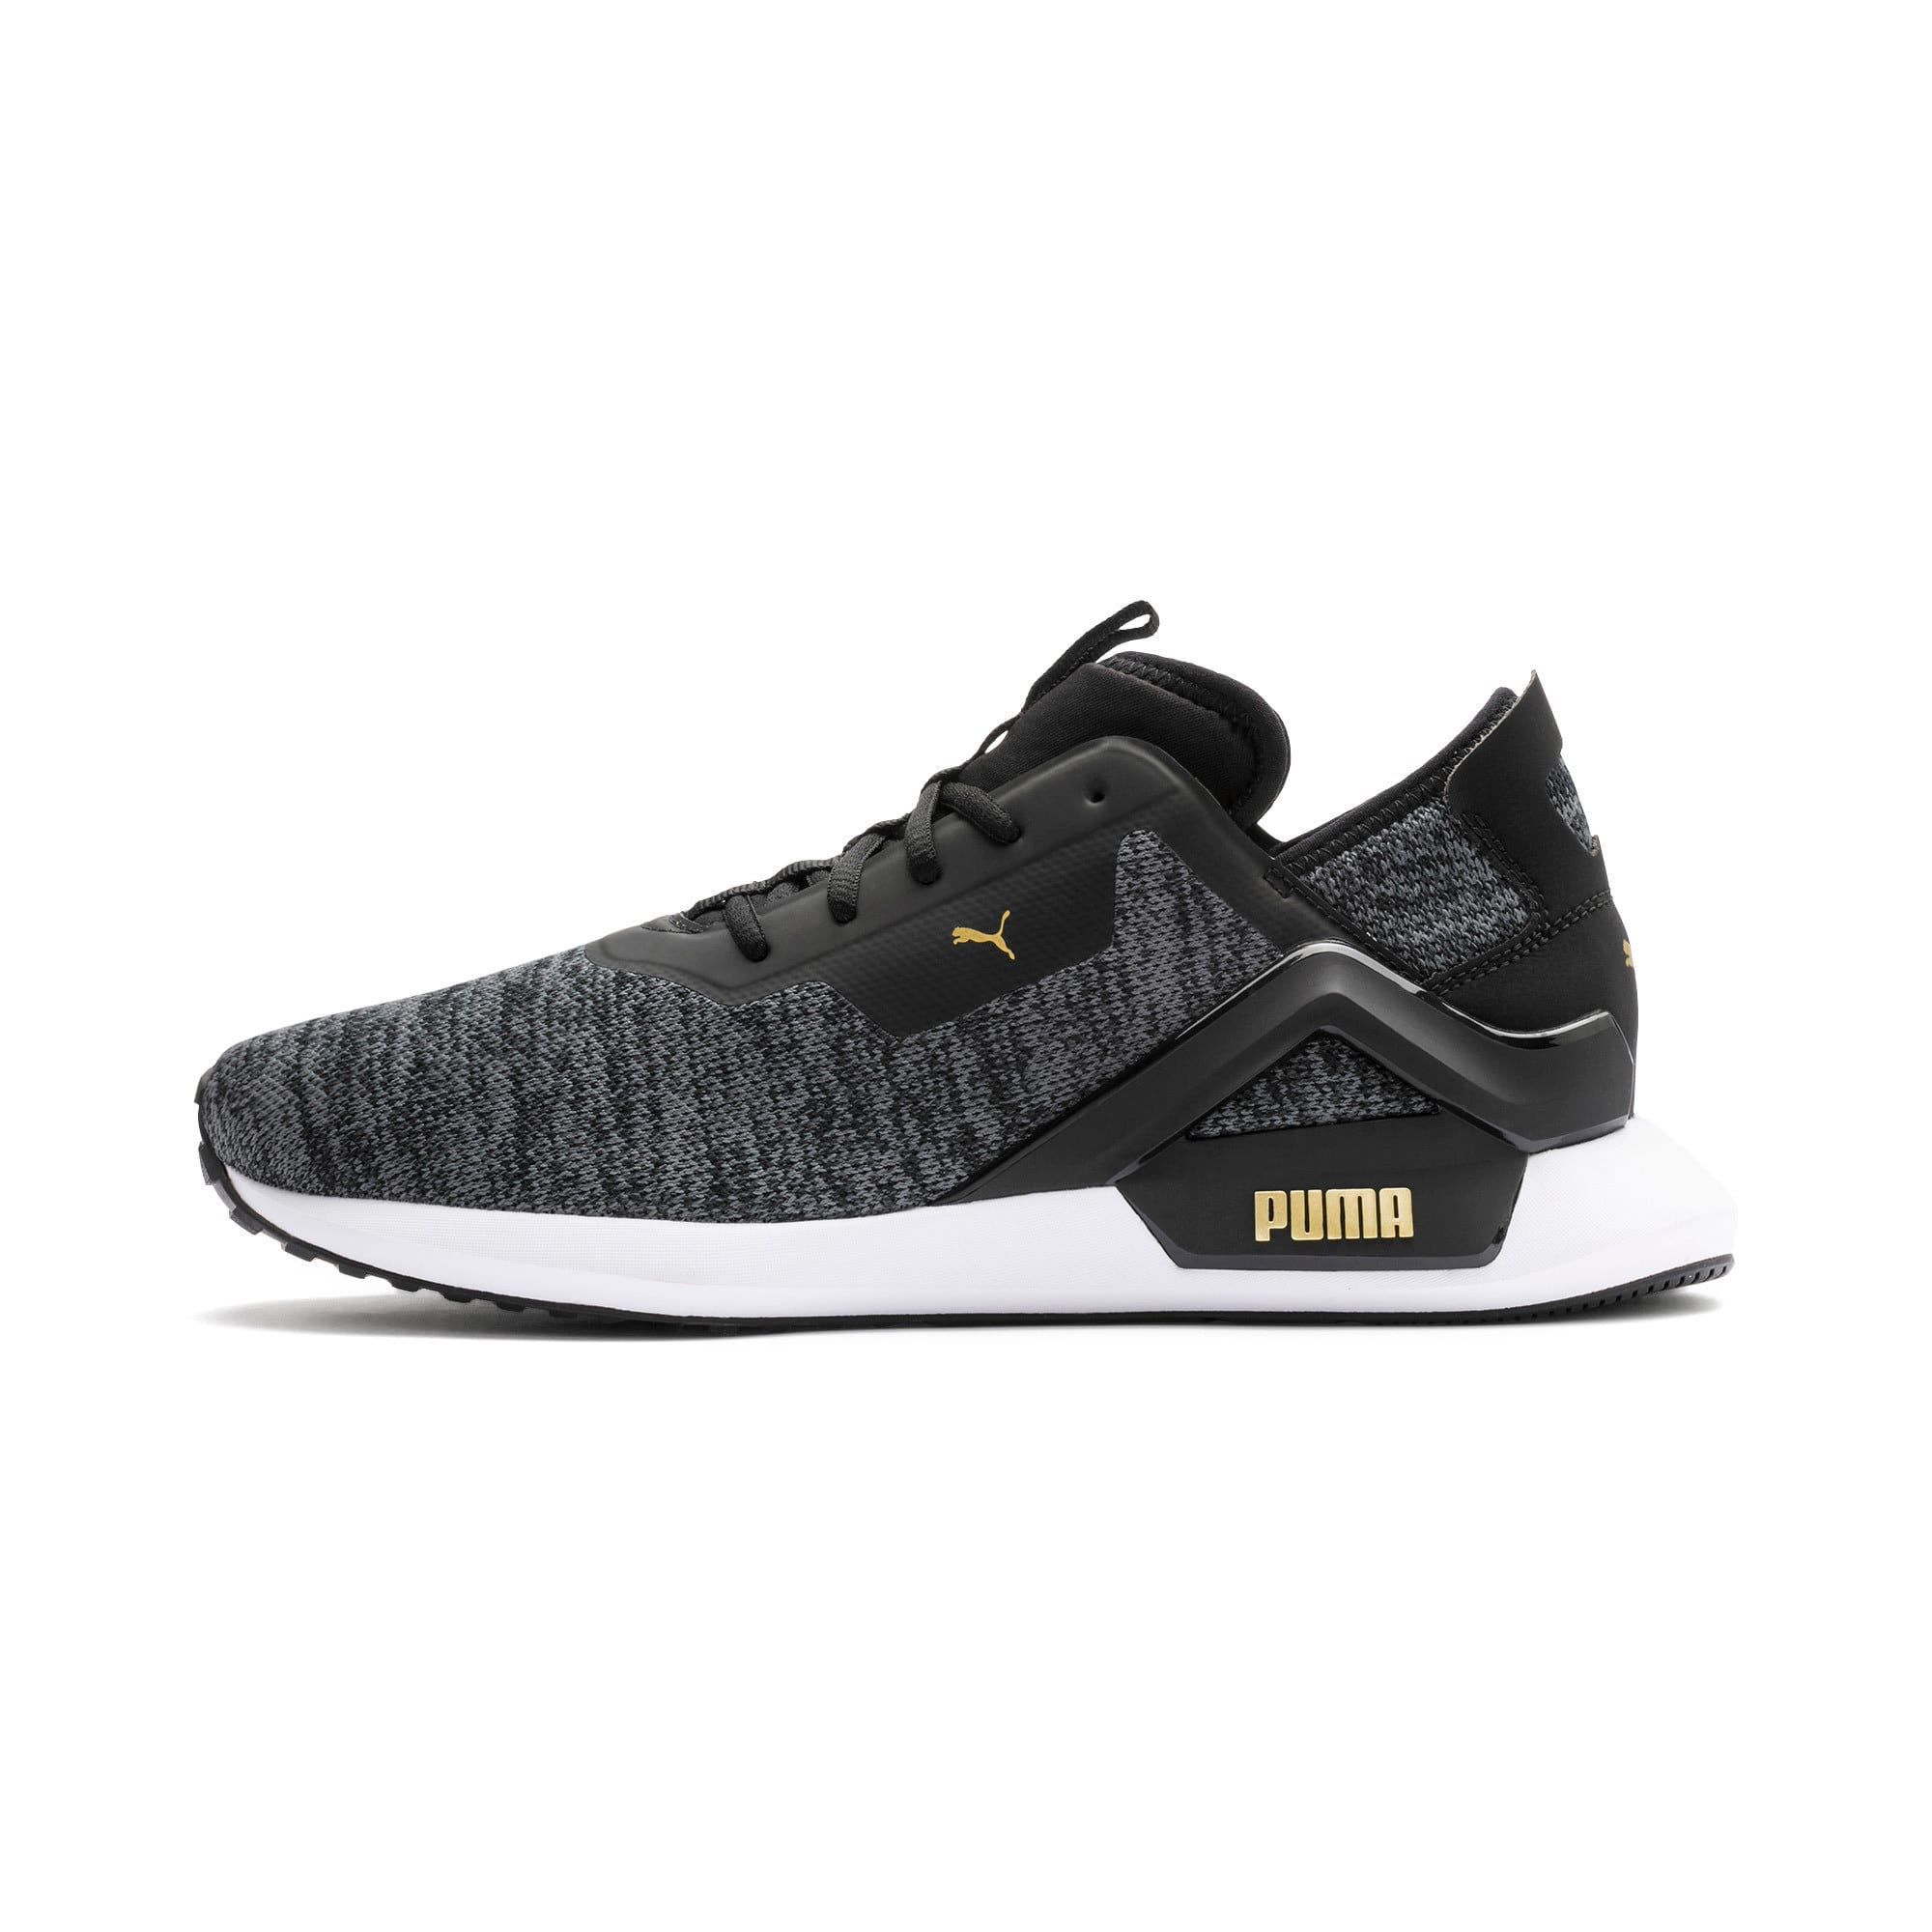 Thumbnail 1 of Rogue X Knit Men's Trainers, Black-CASTLEROCK-Gold, medium